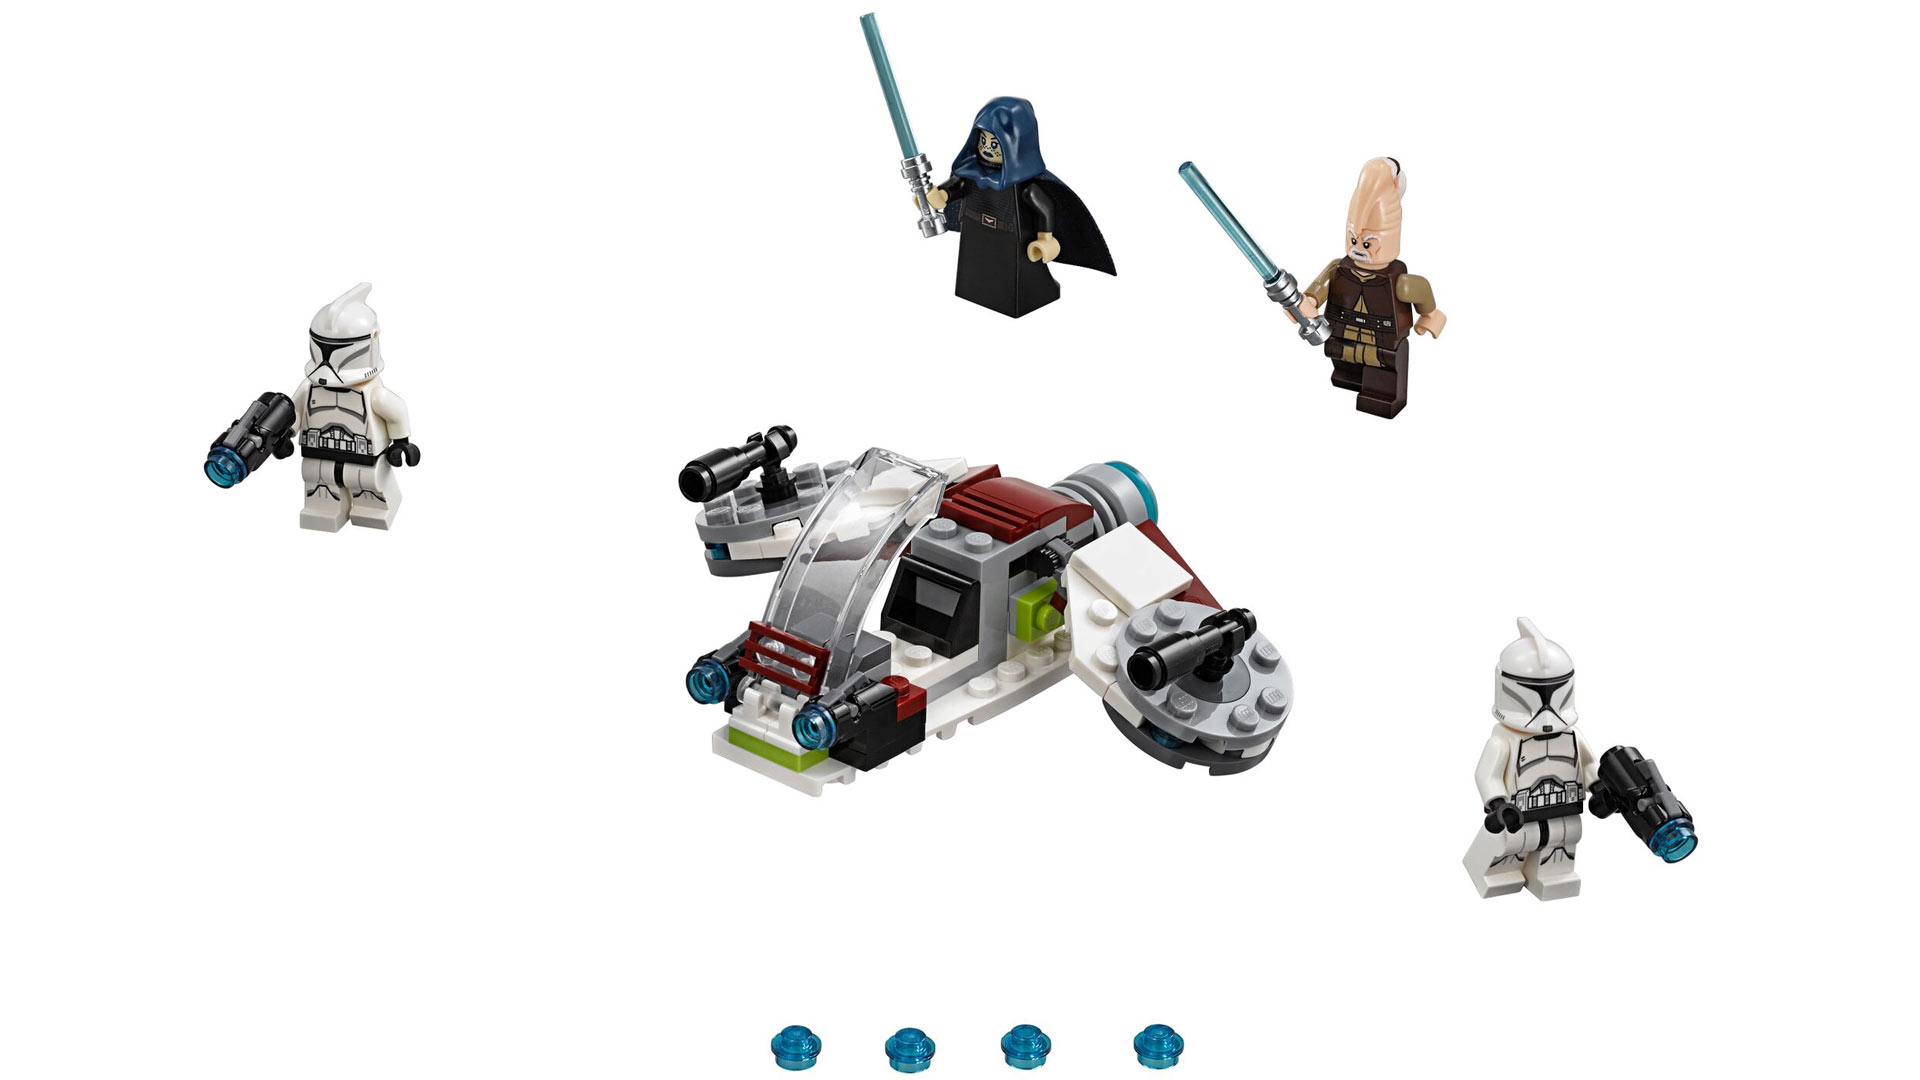 LEGO Star Wars Set 75206 Jedi and Clone Troopers Battle Pack at Toy Fair 2018